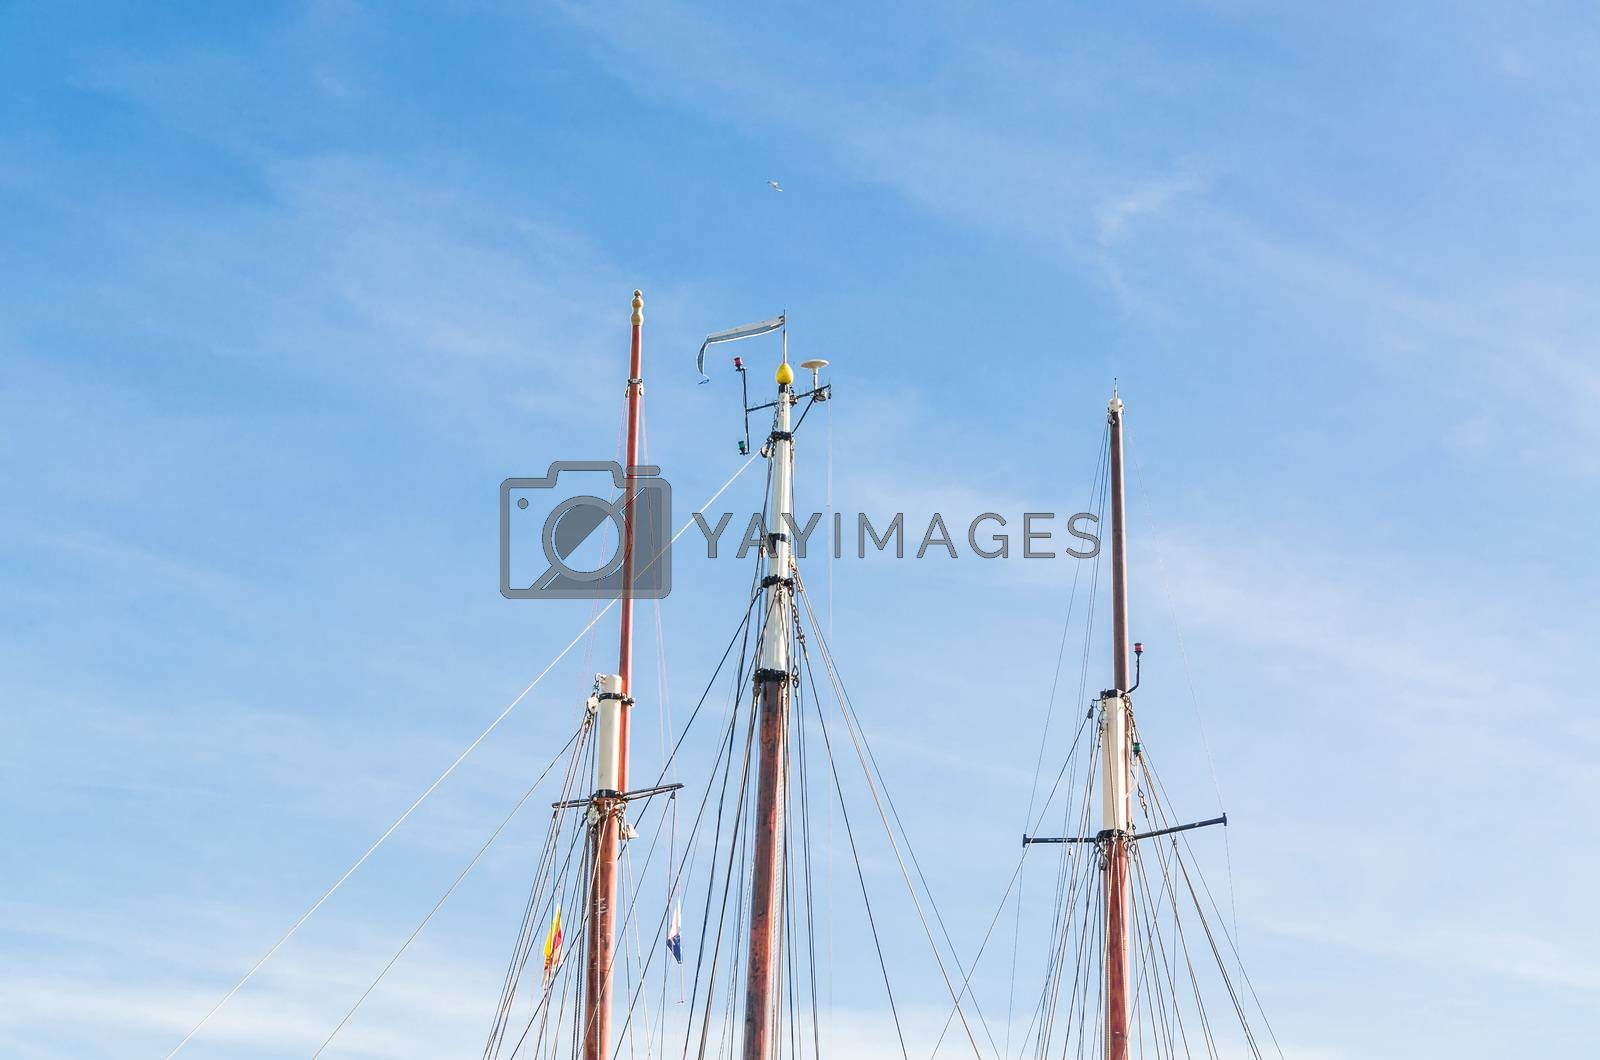 Various ship masts by JFsPic